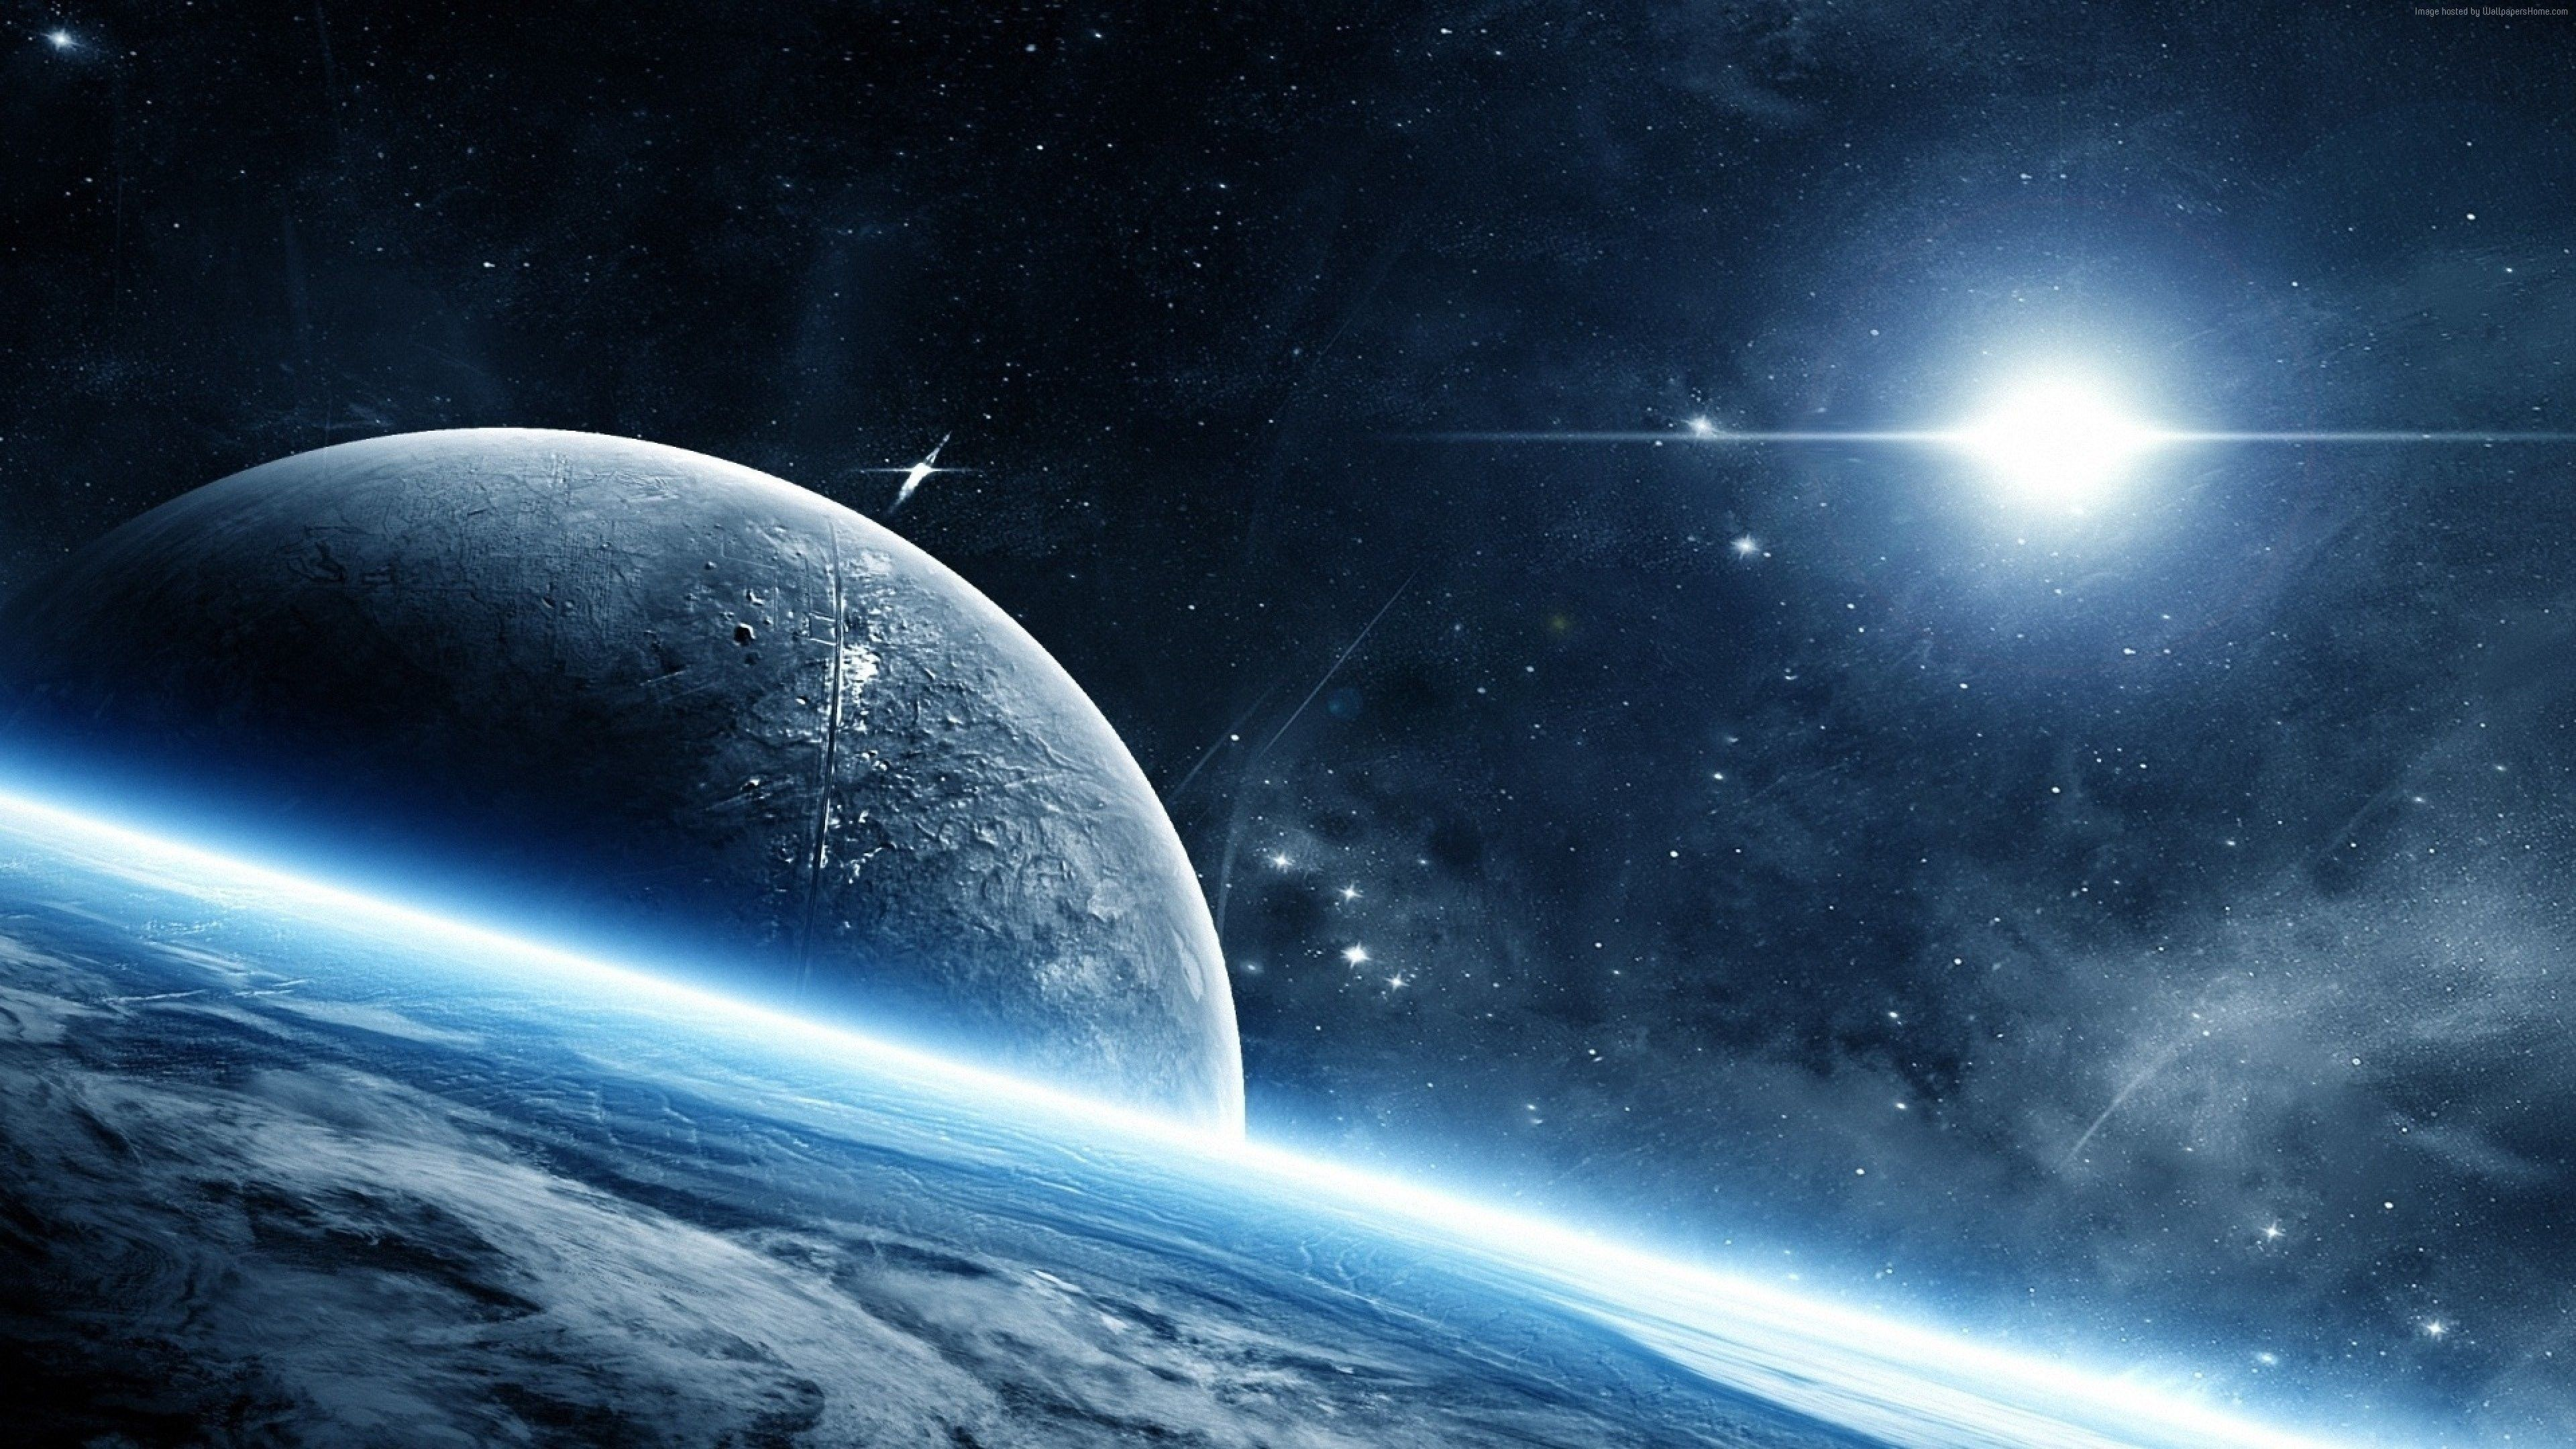 70 Space Background Wallpapers On Wallpaperplay Wallpaper Space Hd Space Outer Space Wallpaper